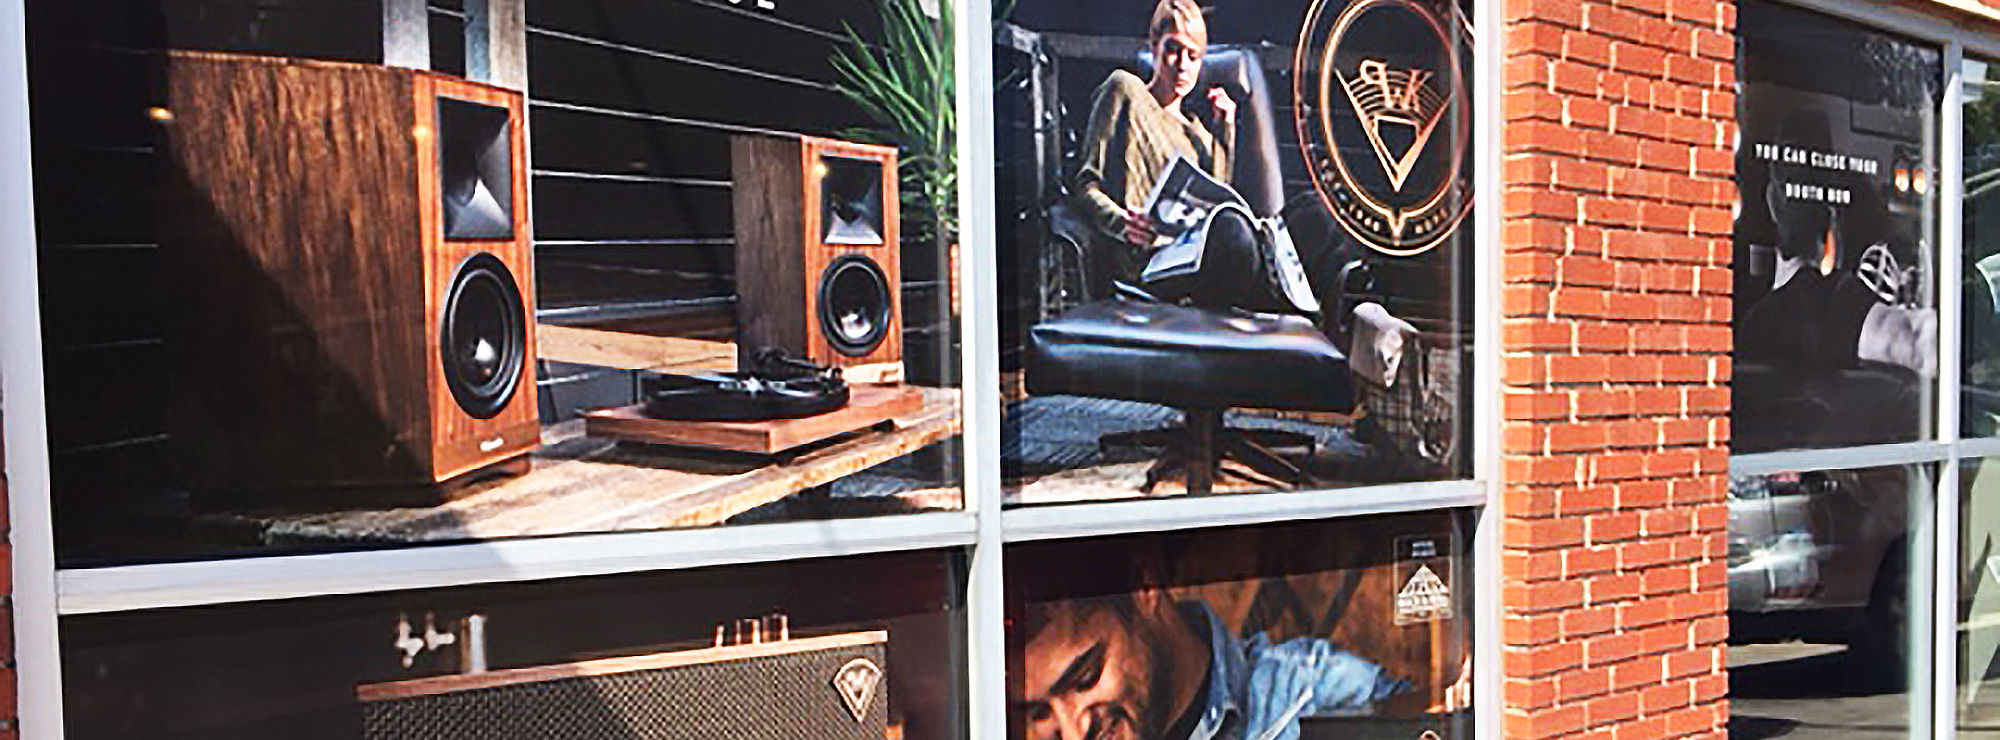 Klipsch pictures in storefront windows